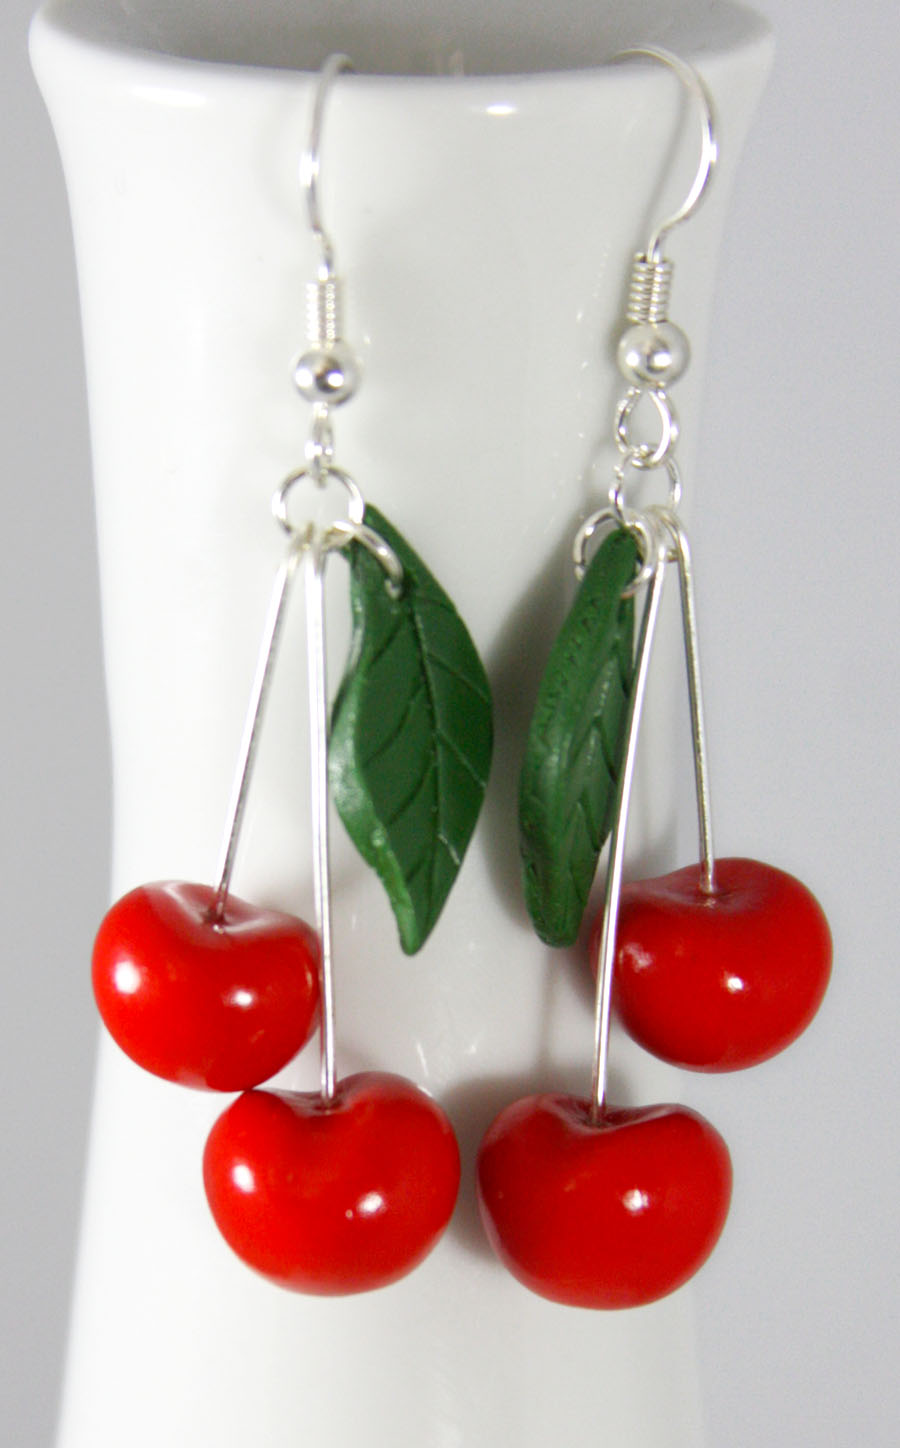 Cherry Earrings by NeverlandJewelry